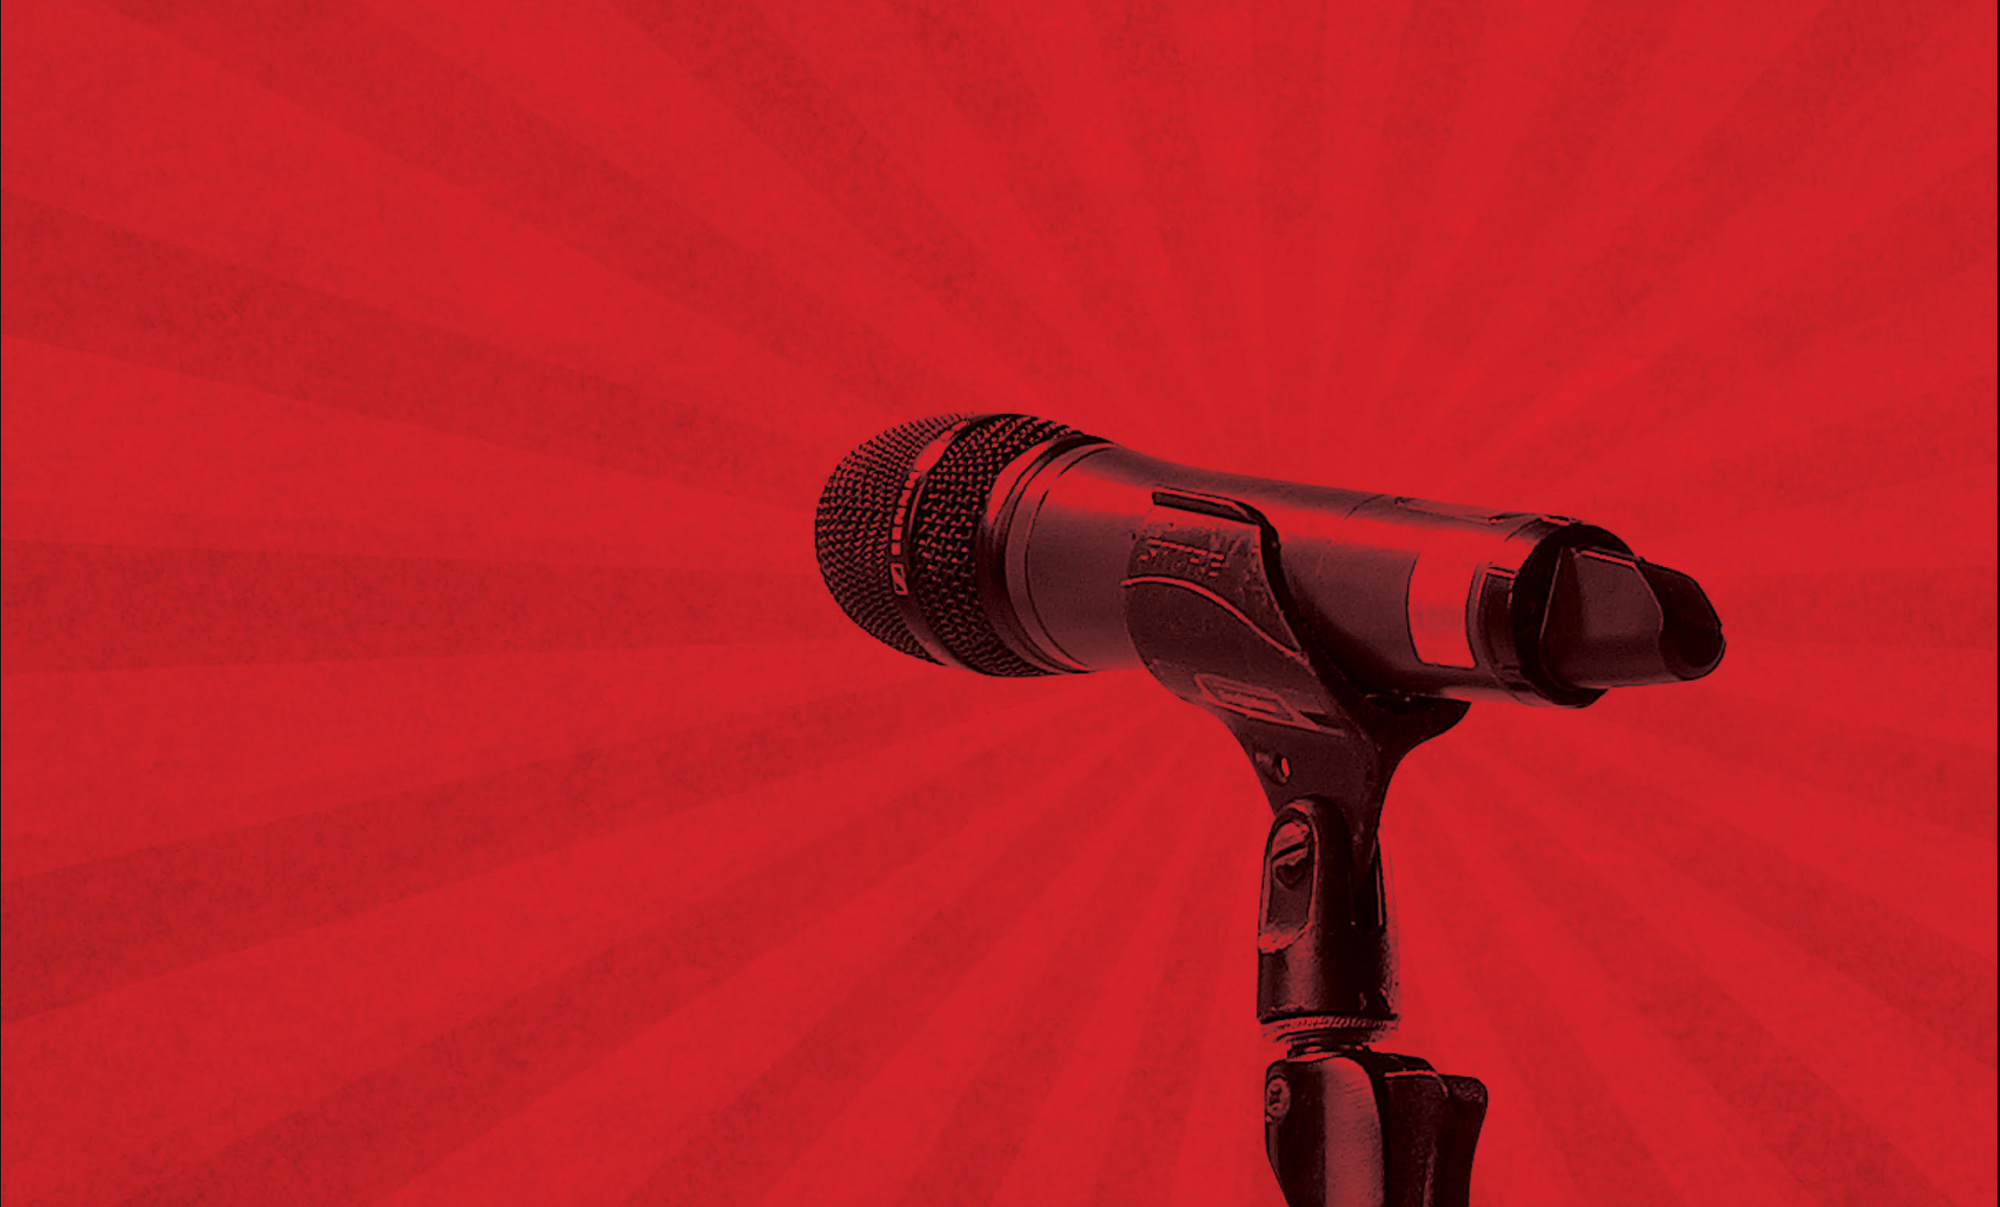 Microphone graphic set against a red background